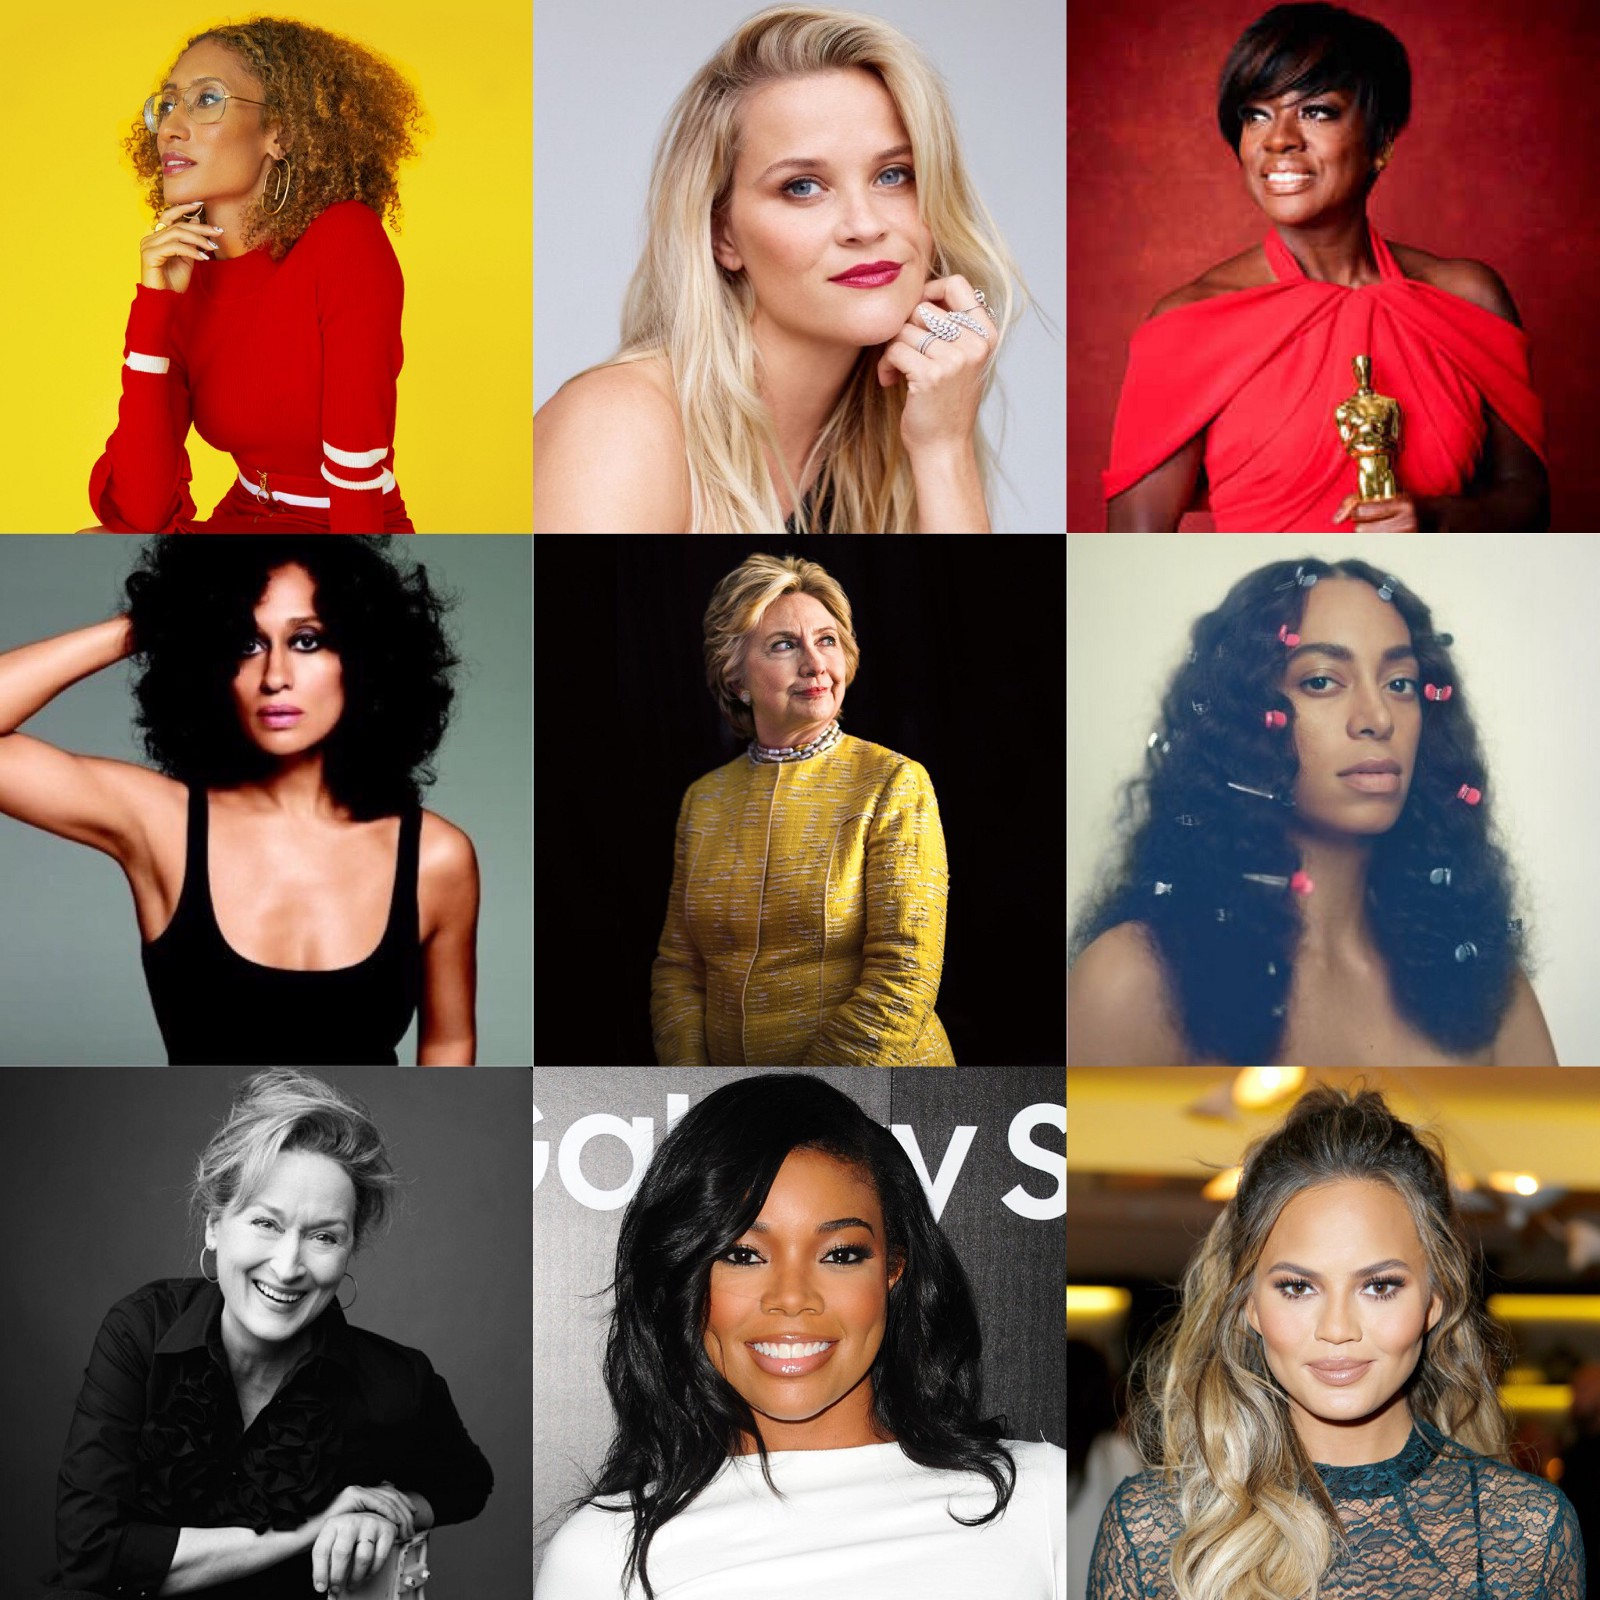 Timesup 25 Inspirational Quotes From Women Who Are Not Staying Silent